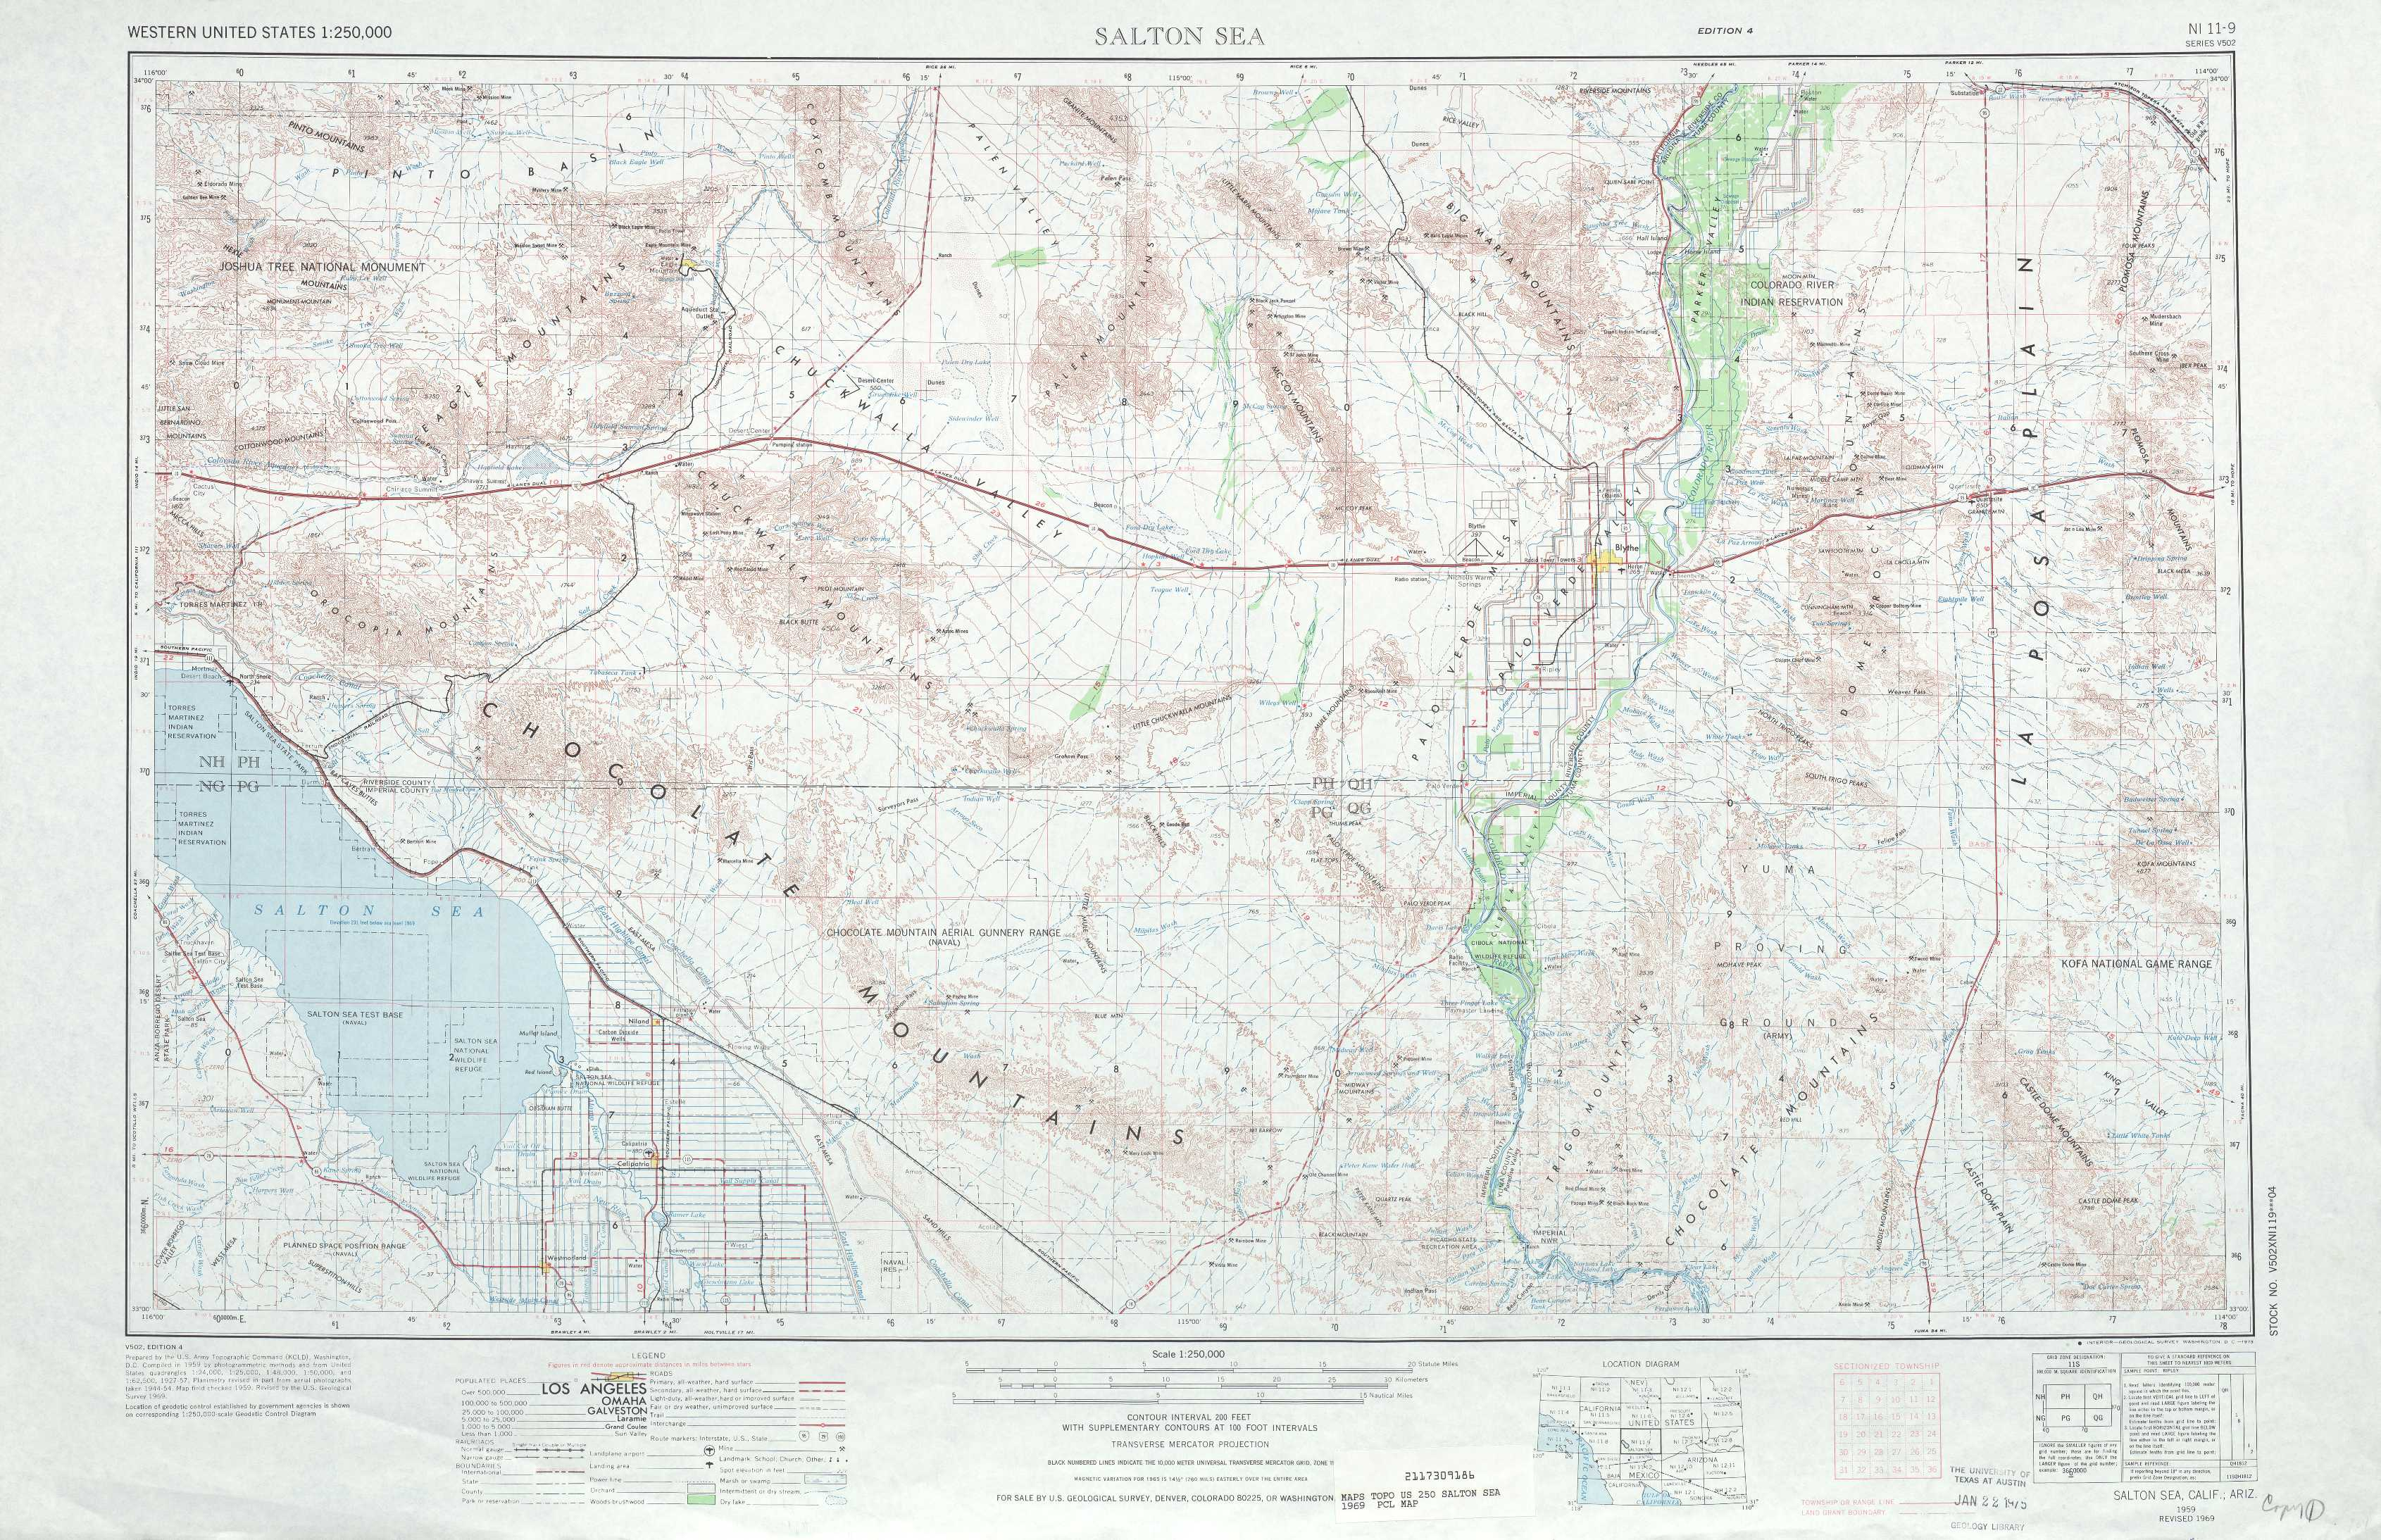 Salton Sea topographic maps CA AZ USGS Topo Quad 33114a1 at 1